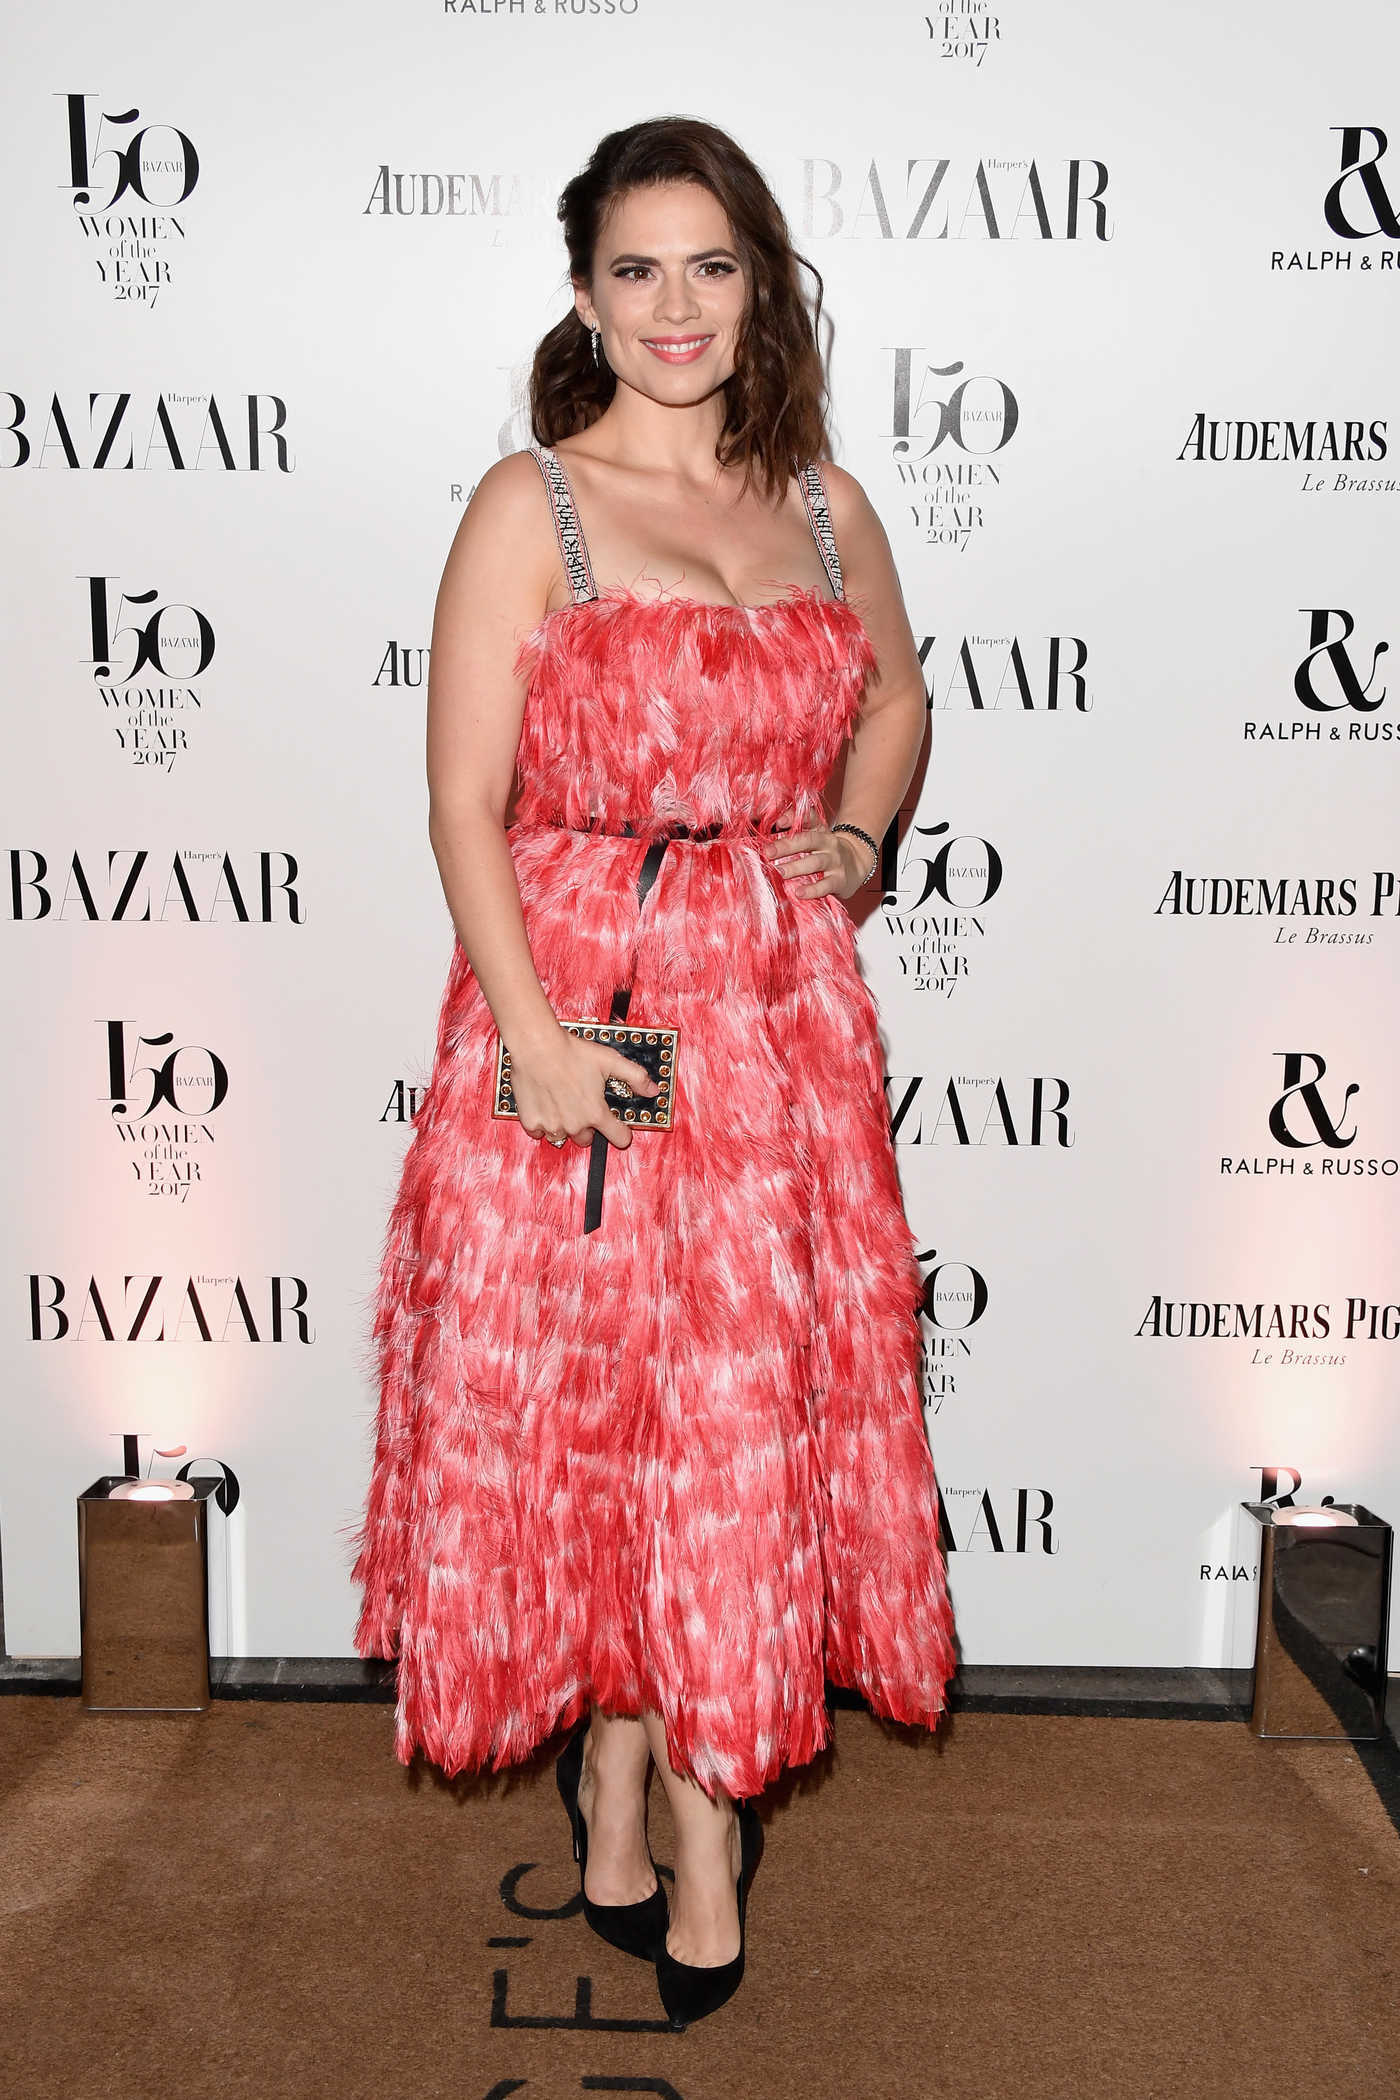 Hayley Atwell at the Harper's Bazaar Women of the Year Awards in London 11/02/2017